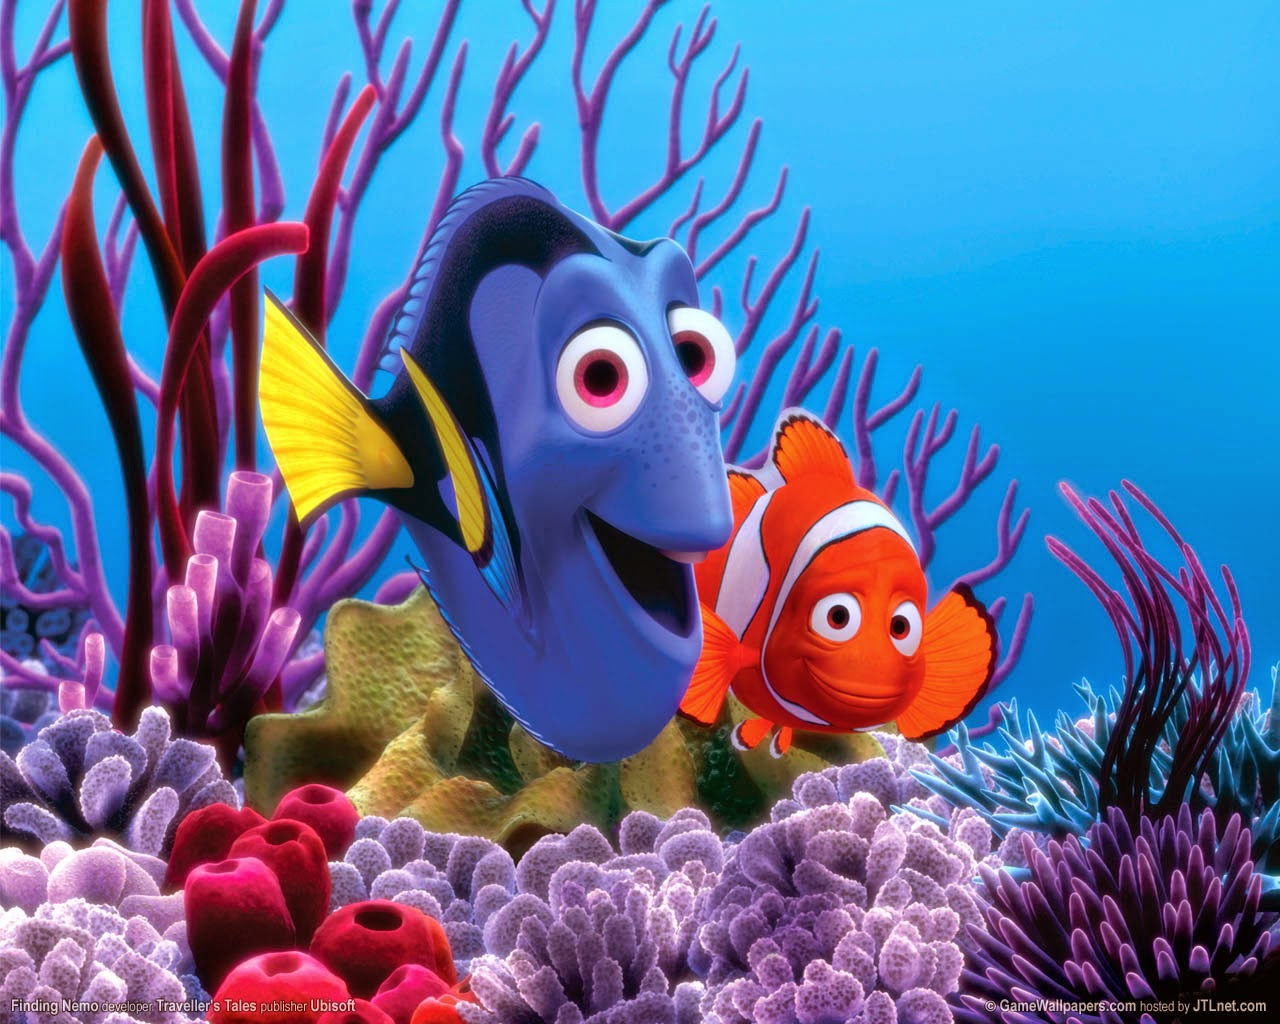 Finding Nemo Wallpaper | Deloiz Wallpaper